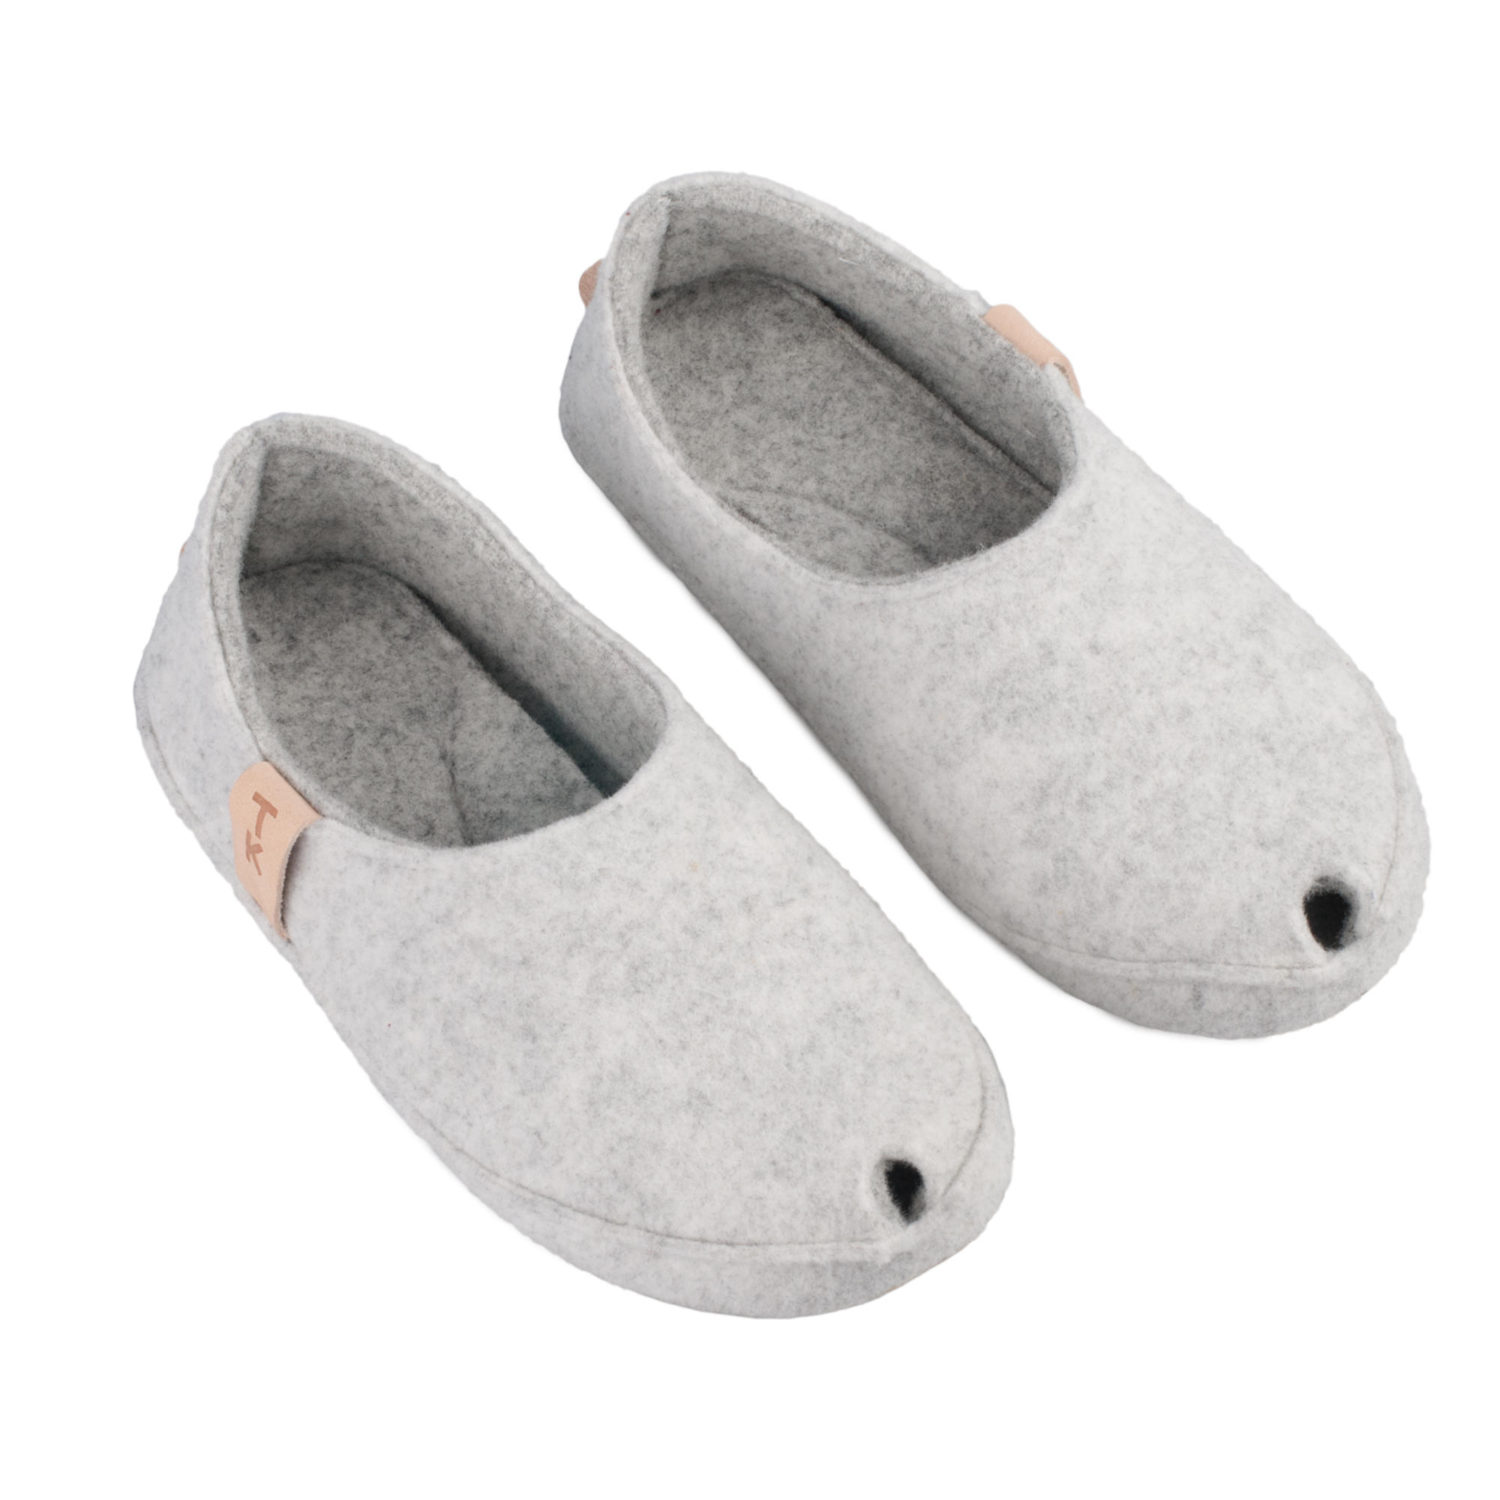 TOKU Budapest comfortable indoor slippers